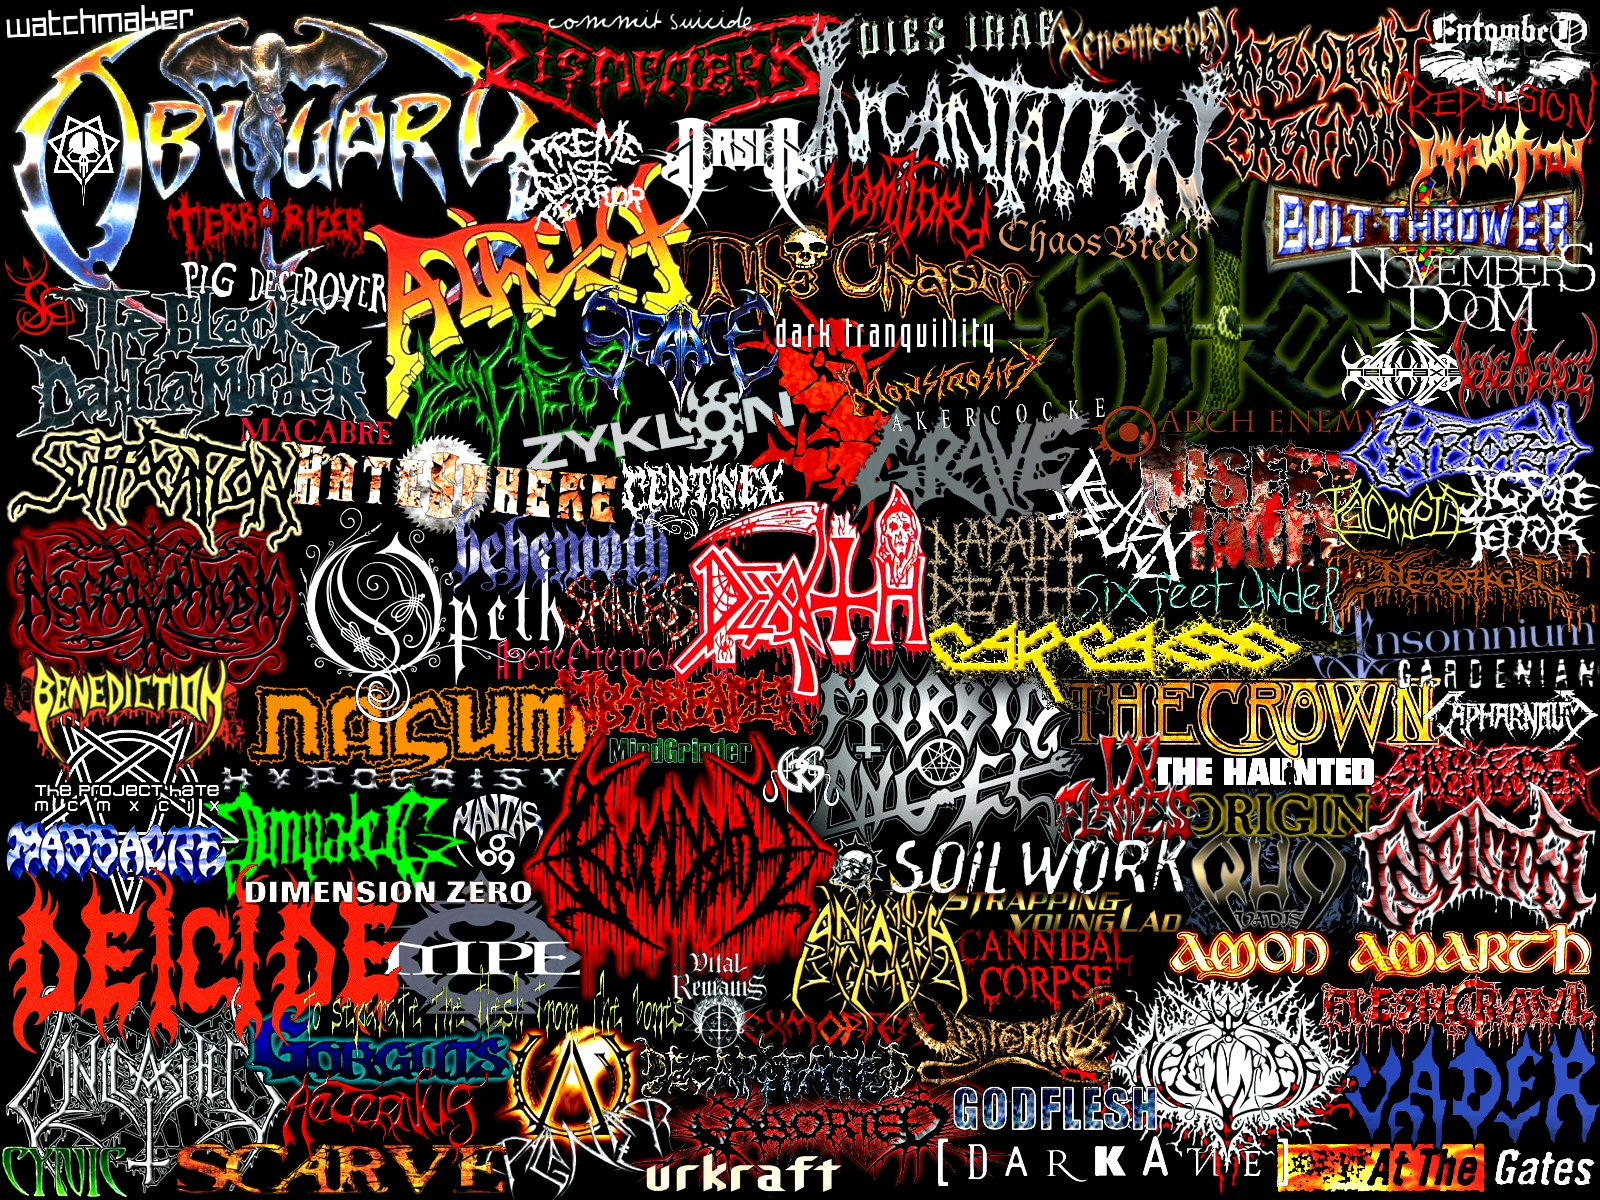 Hd Wallpapers Hd Heavy Metal Band Wallpapers